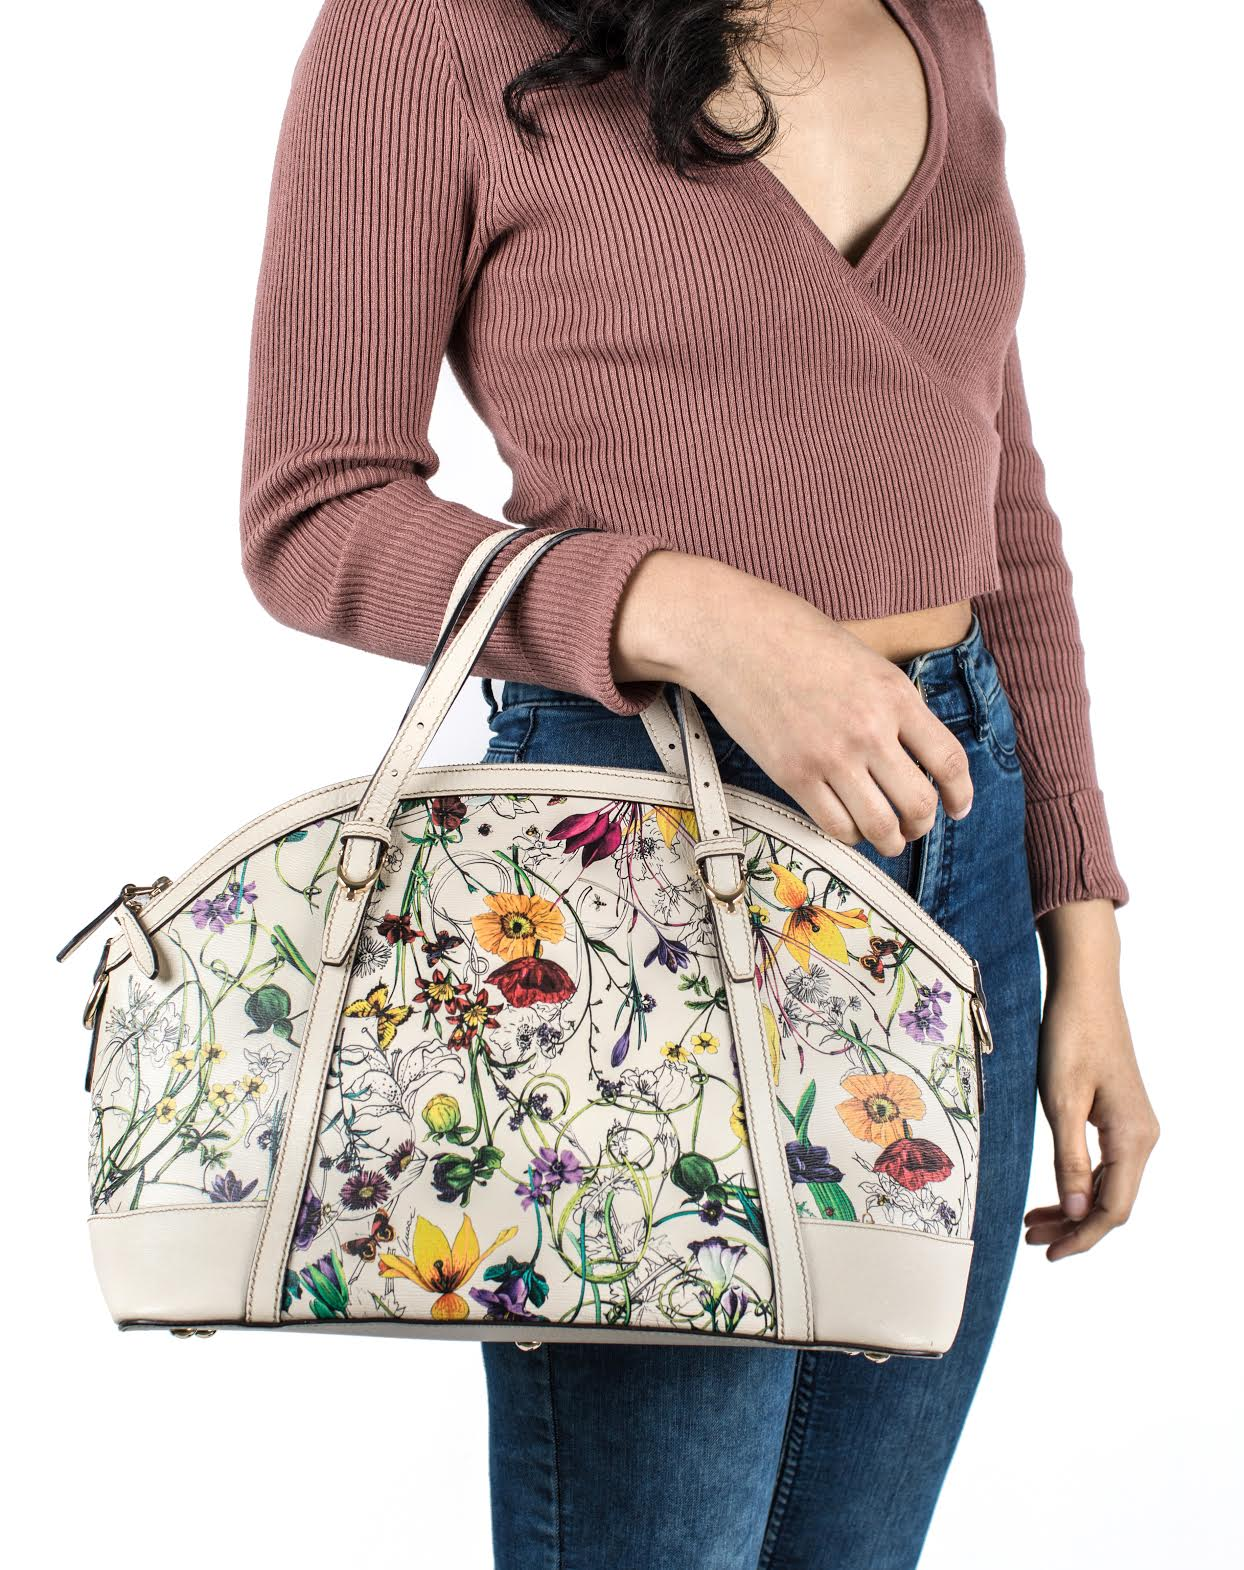 9fd07d85753 The History of Gucci's Iconic Flora Print - StockX News